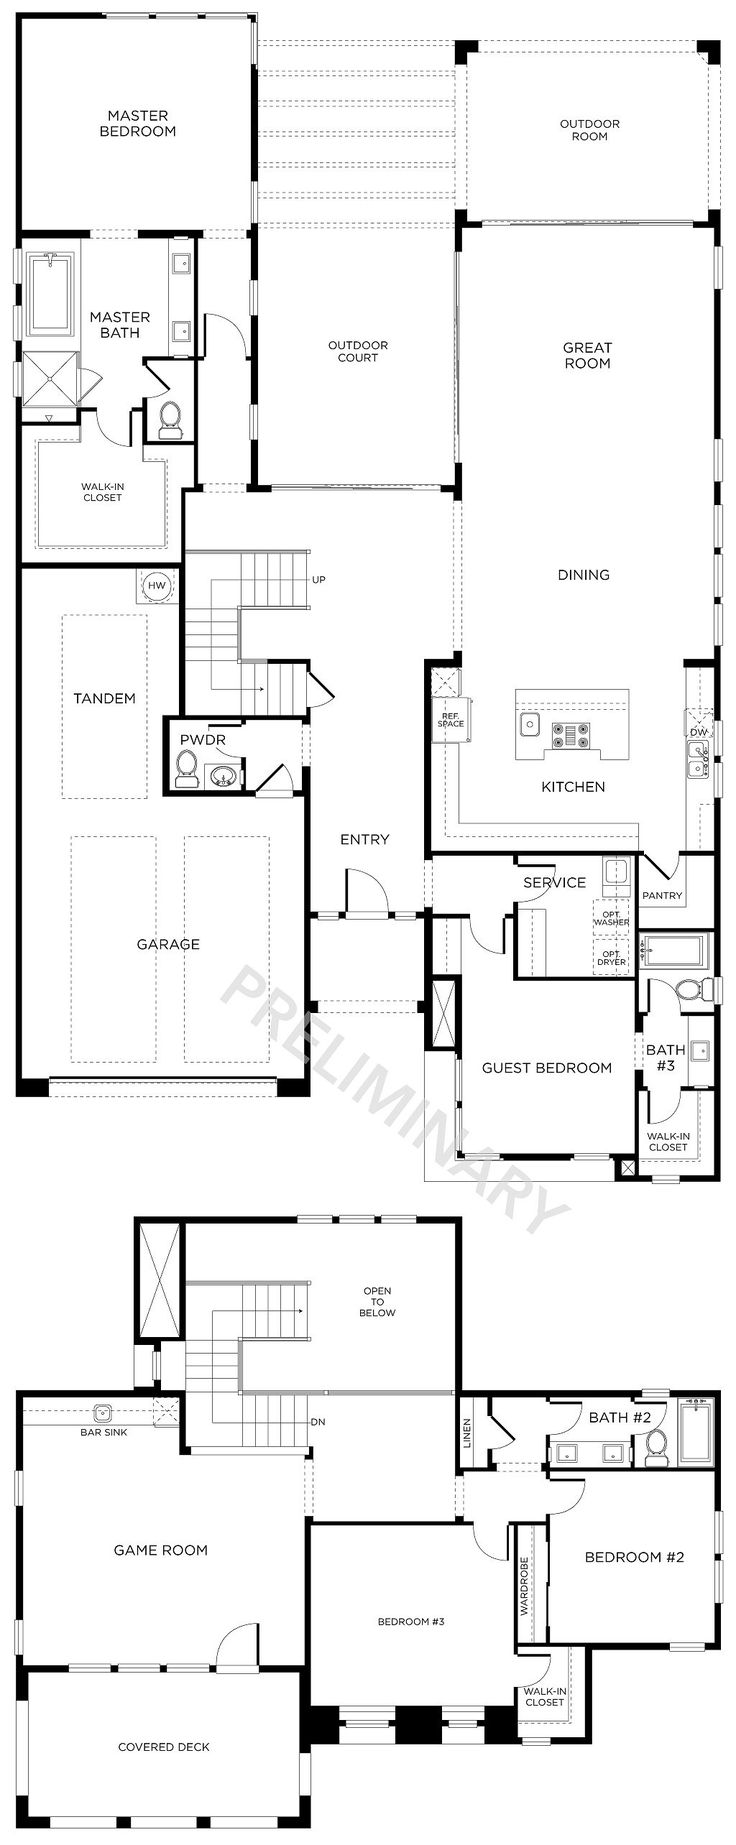 Best Las Vegas Pardee Homes Images On Pinterest - Las vegas floor plans